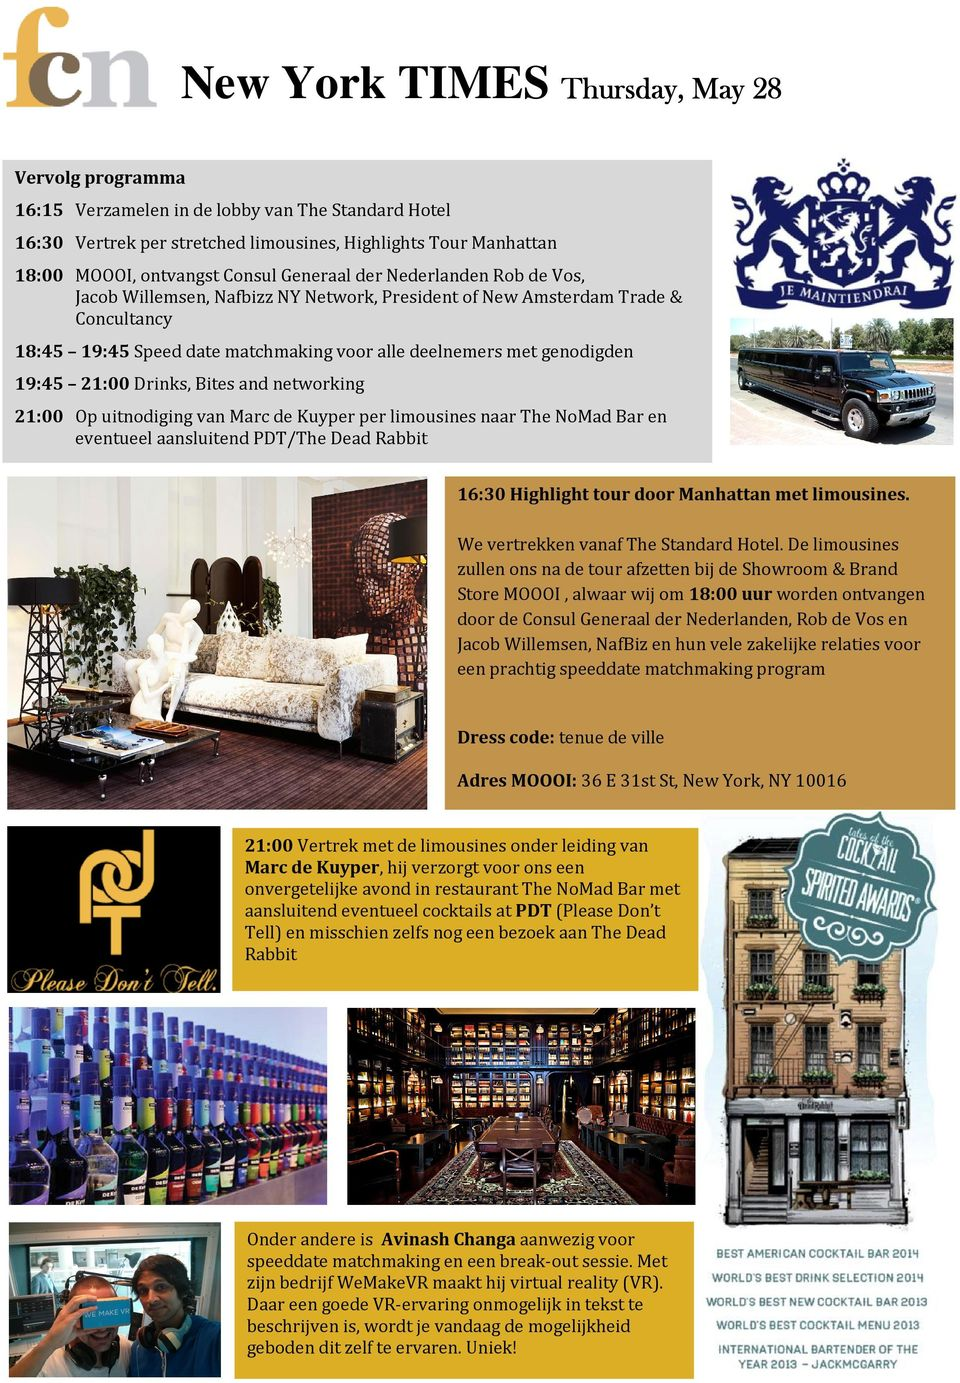 21:00 Drinks, Bites and networking 21:00 Op uitnodiging van Marc de Kuyper per limousines naar The NoMad Bar en eventueel aansluitend PDT/The Dead Rabbit 16:30 Highlight tour door Manhattan met